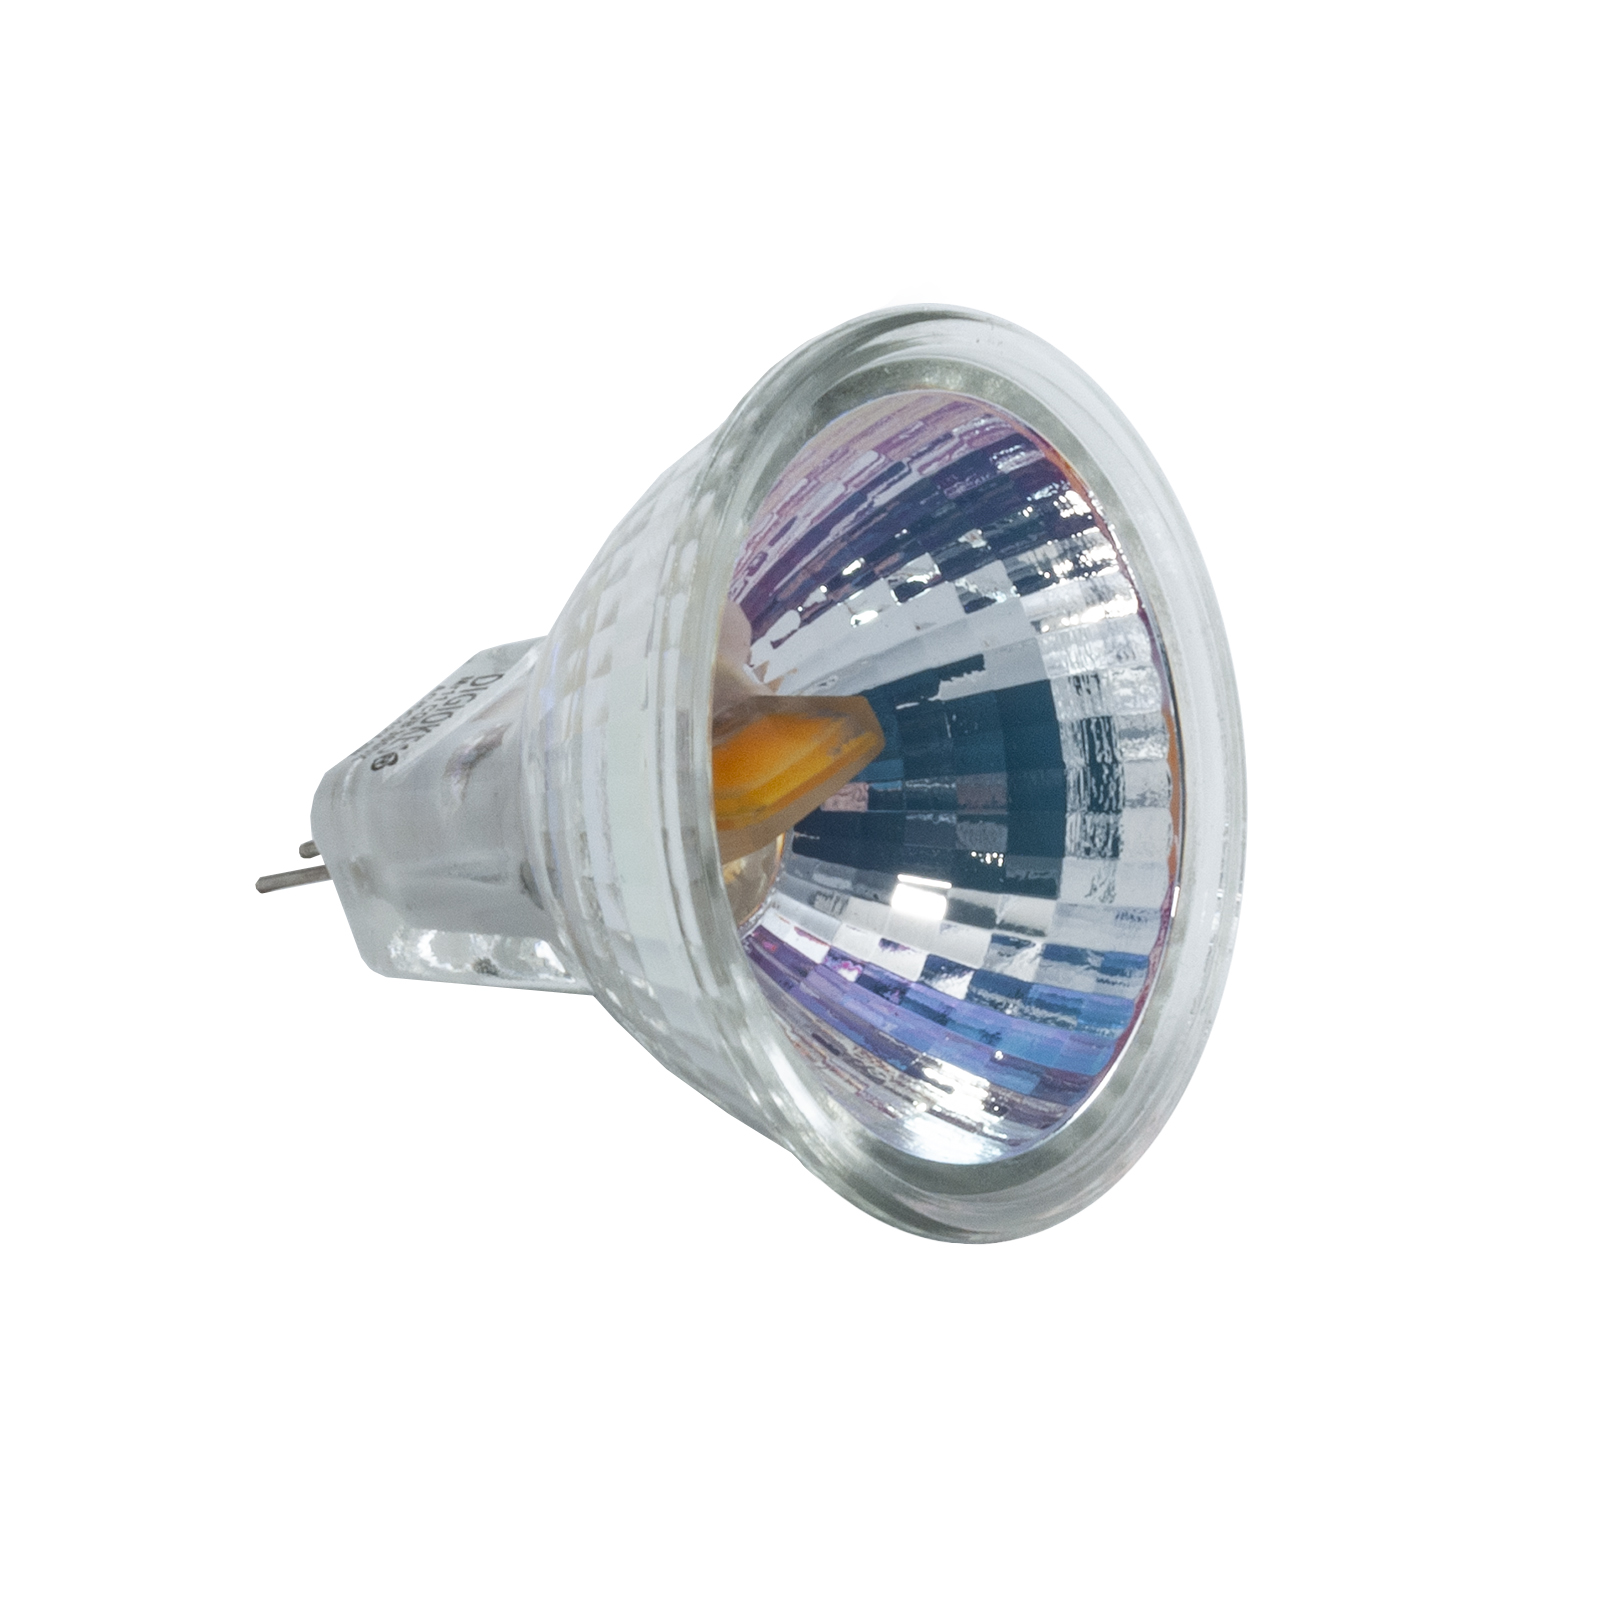 Spotlight lamp, MR11 LED 3W made 30W attack G4 12V light boat camper showcases